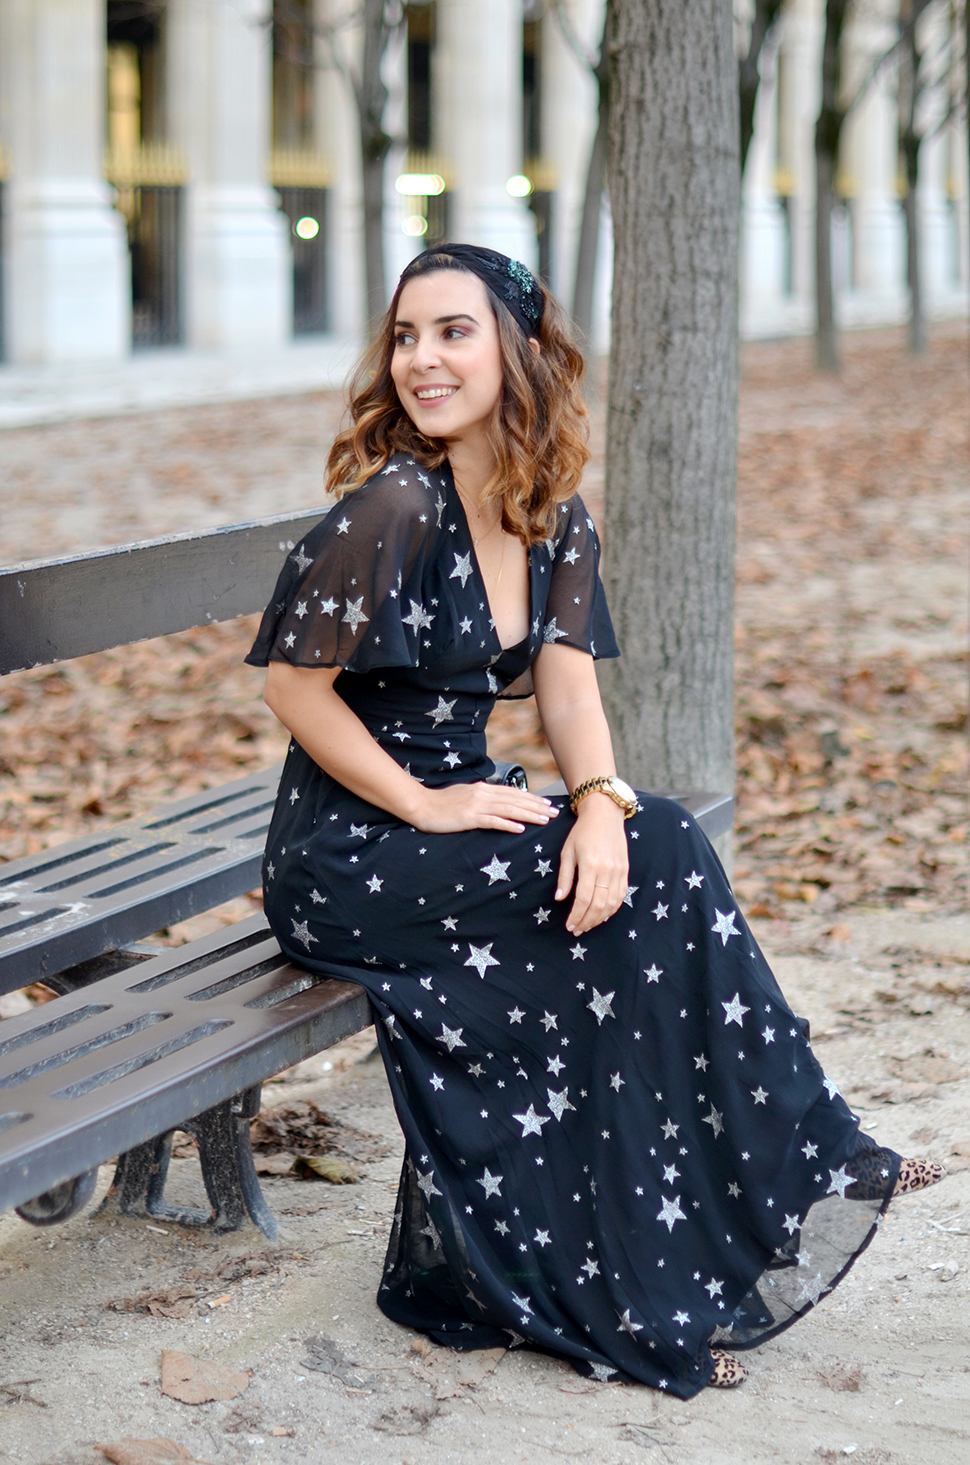 Helloitsvalentine_stars_dress_6